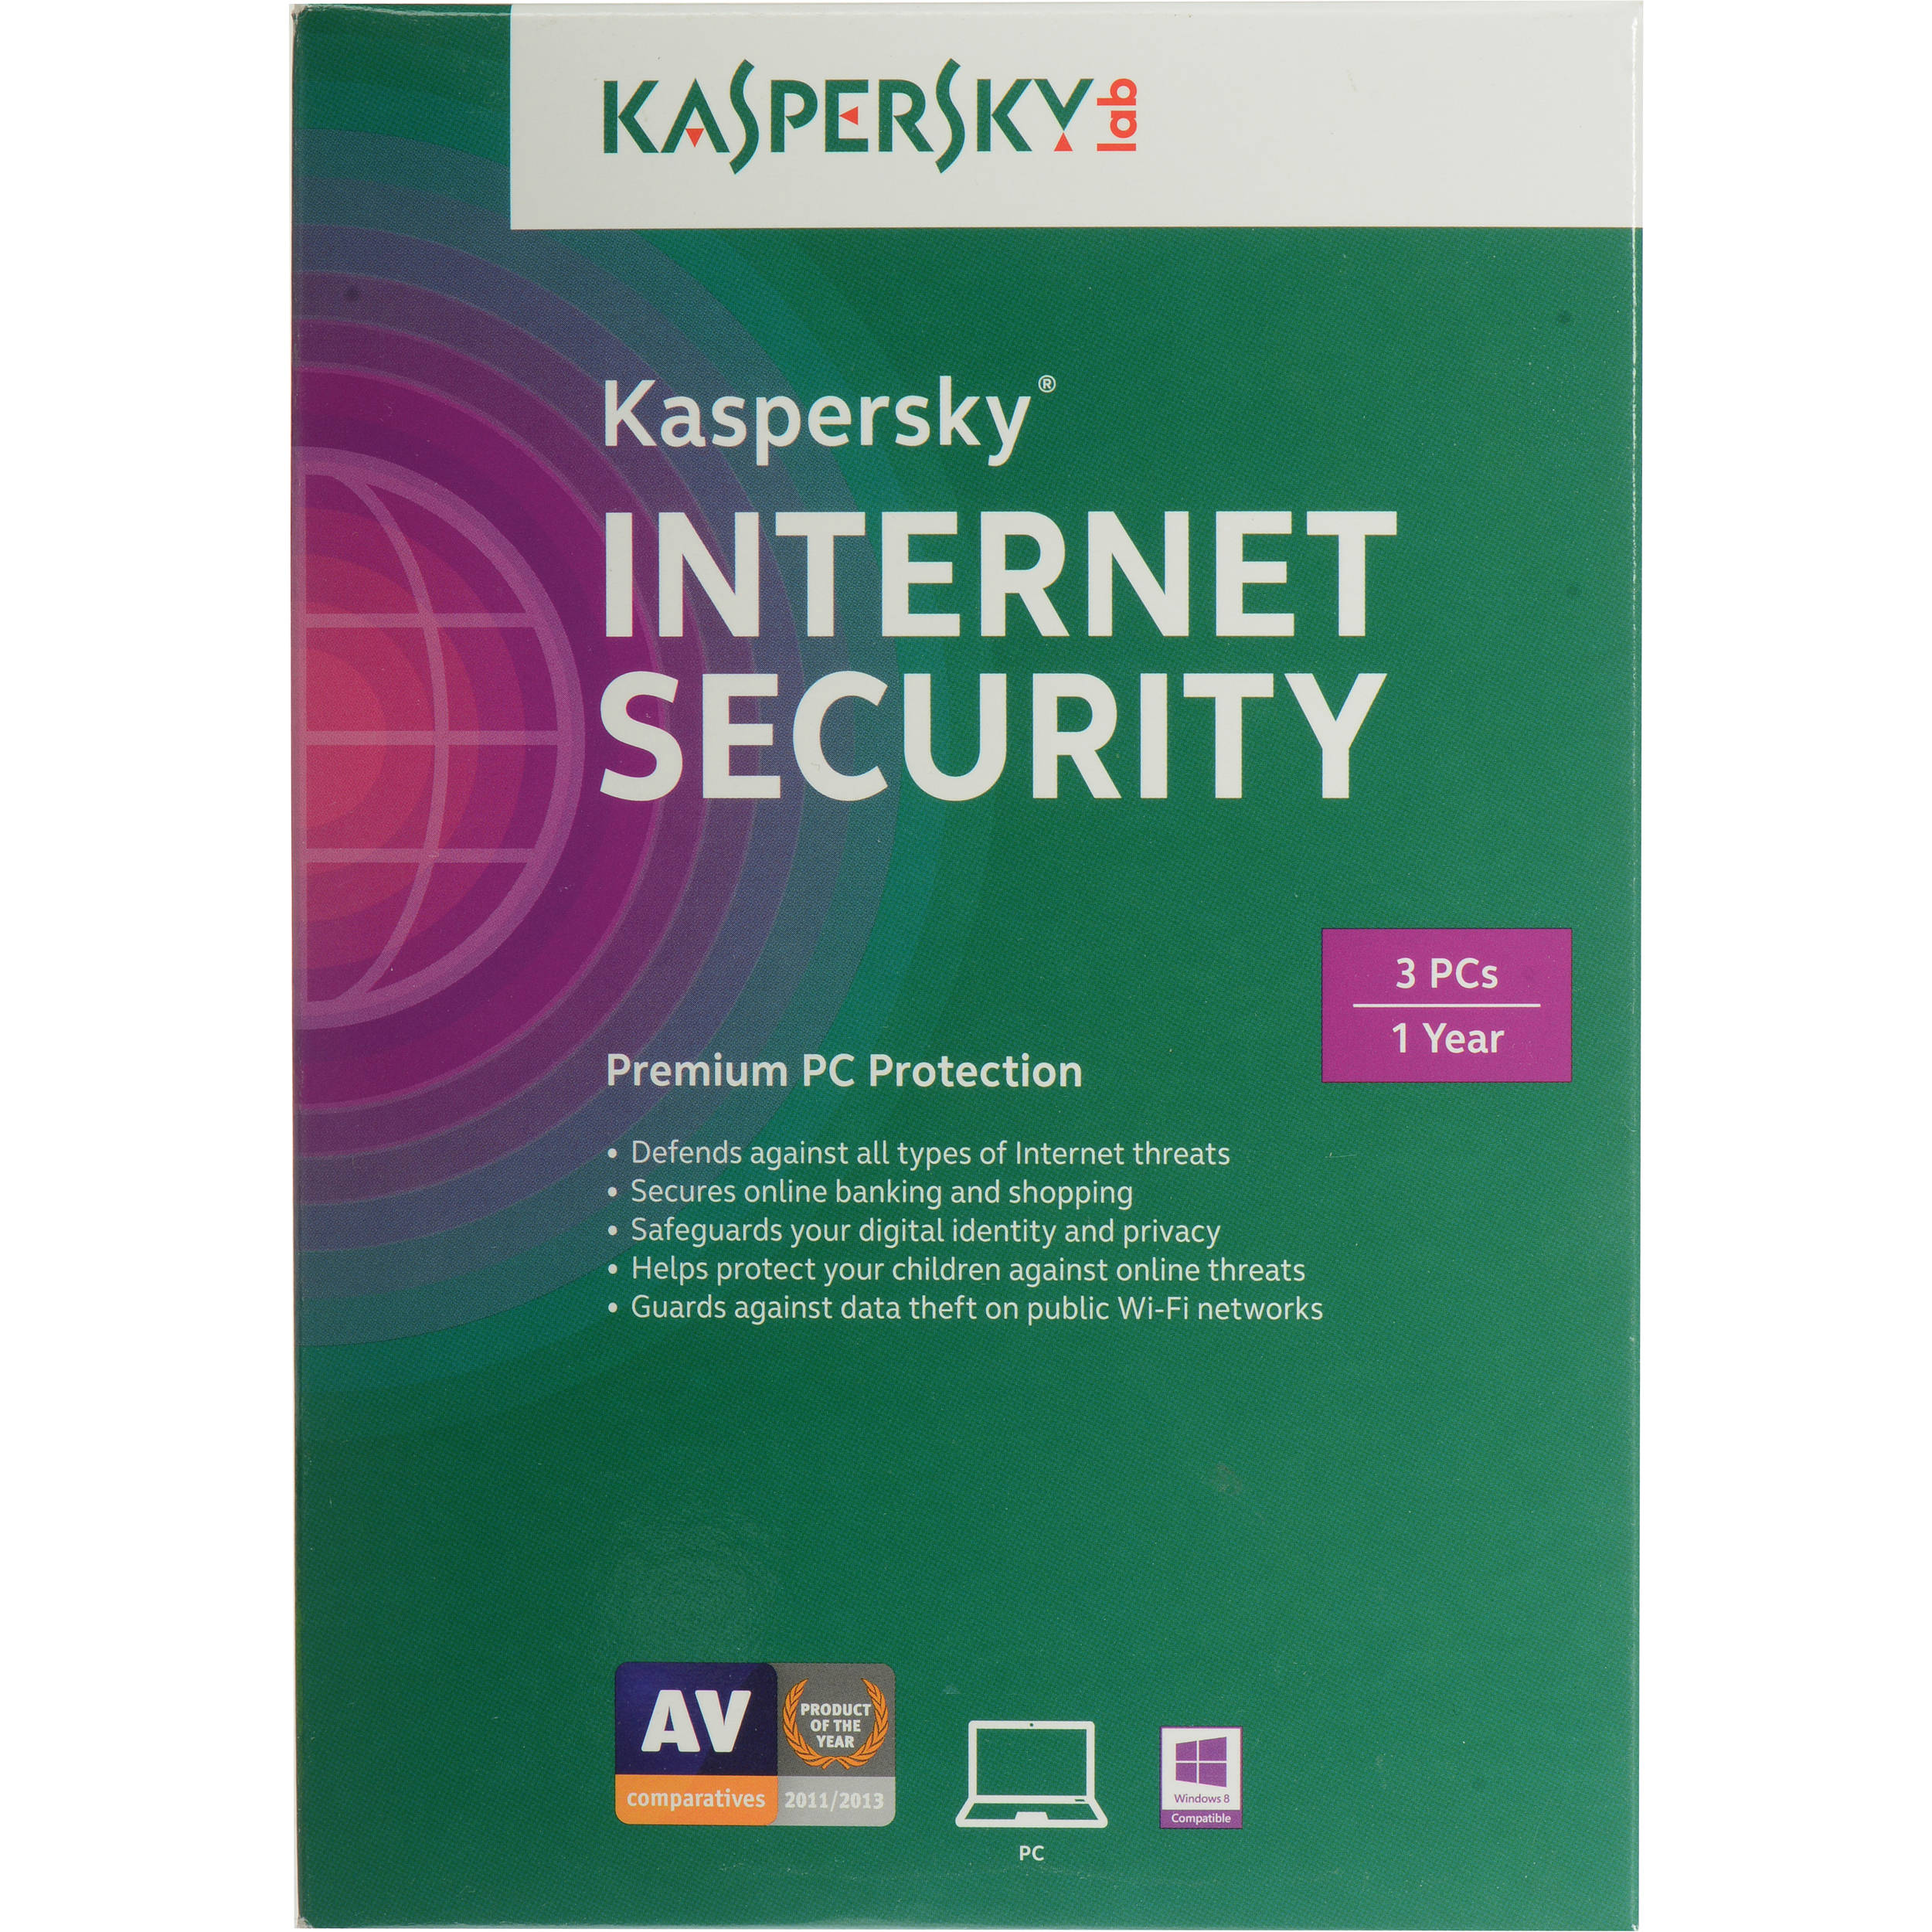 Used Kaspersky Internet Security 2015 KIS1503121USZZ B&H Photo